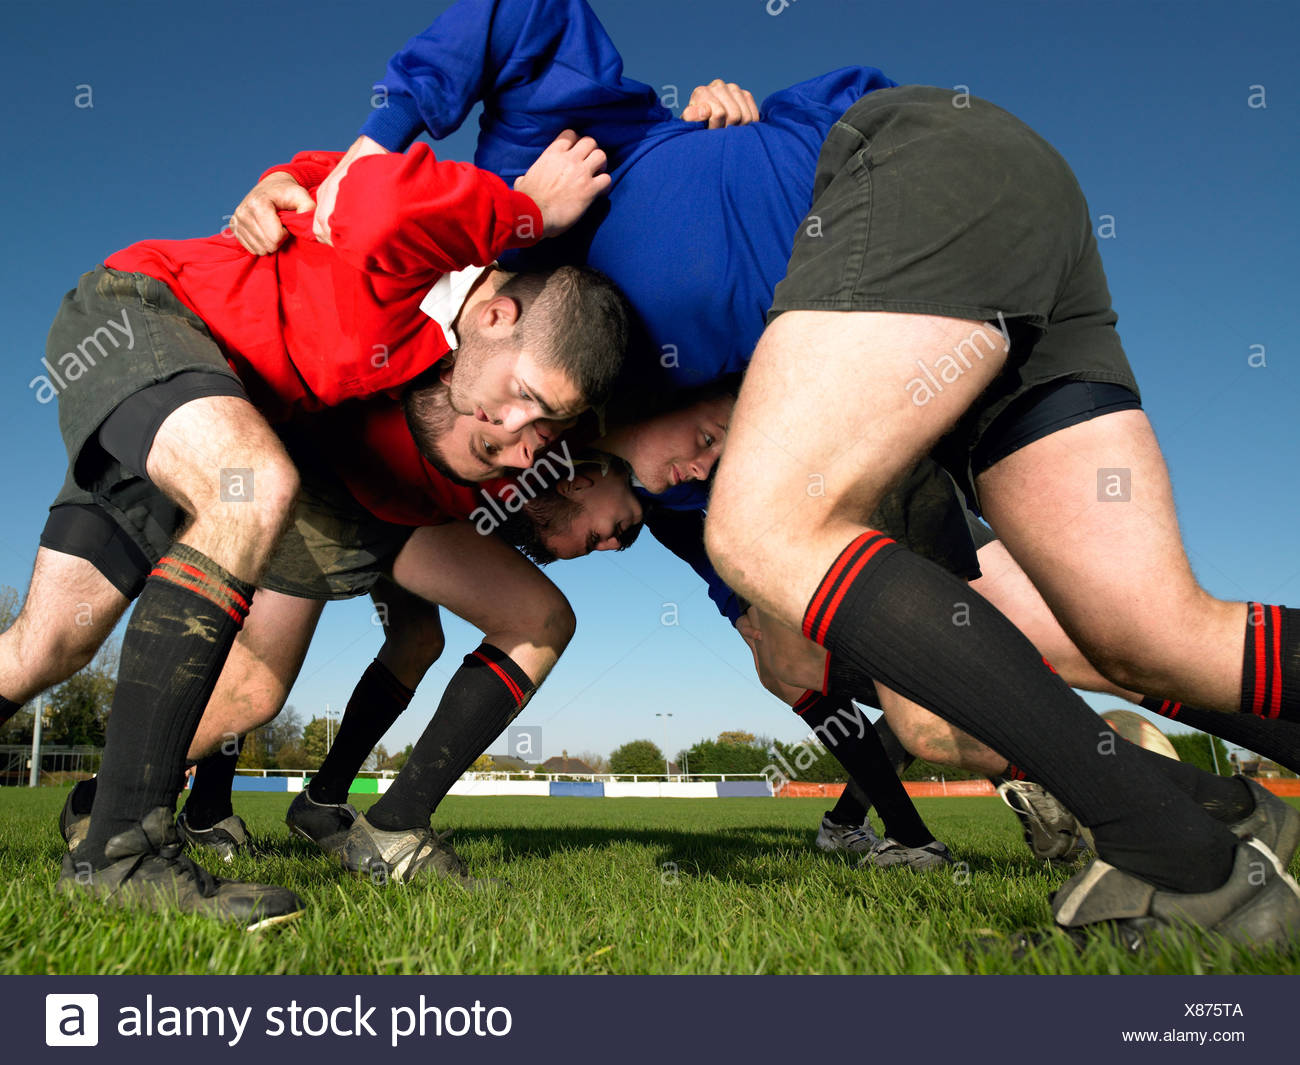 Rugby players in a scrum - Stock Image